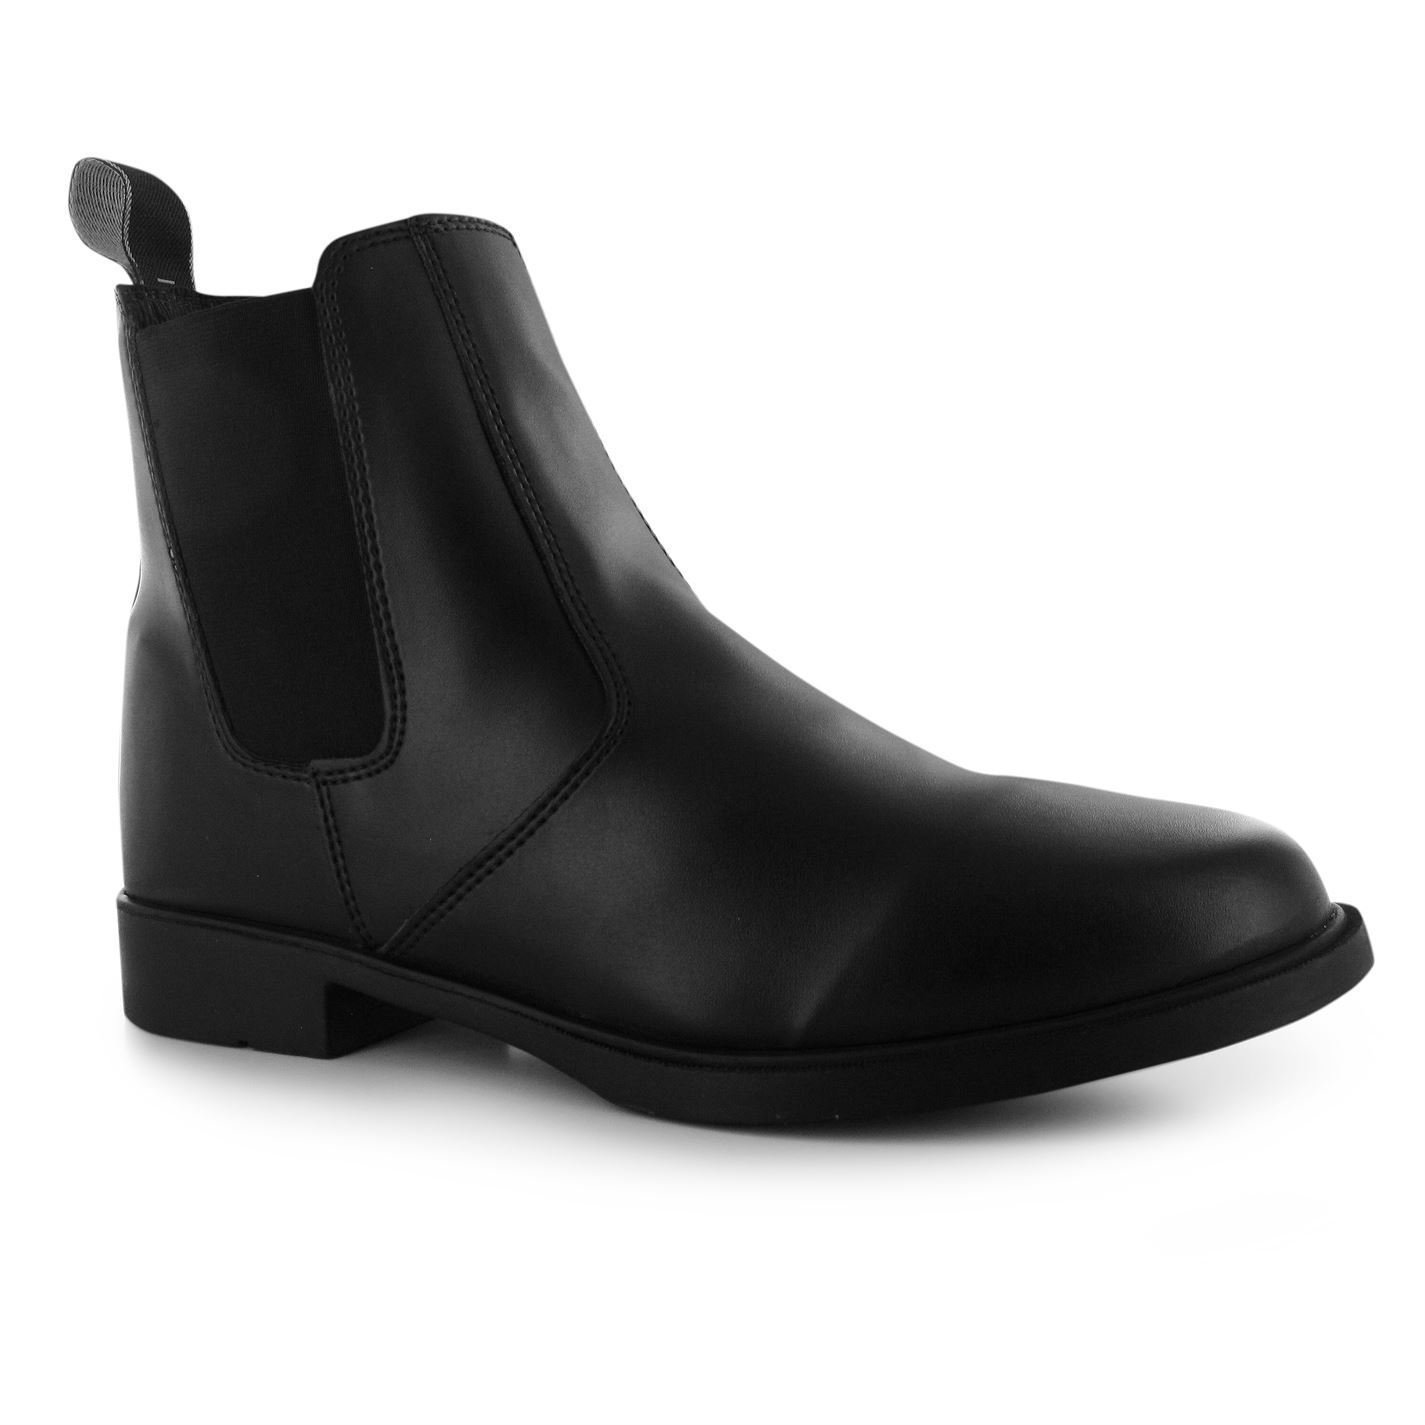 Requisite Mens Aspen BS Horse Riding Boots Shoes Country Walking Footwear